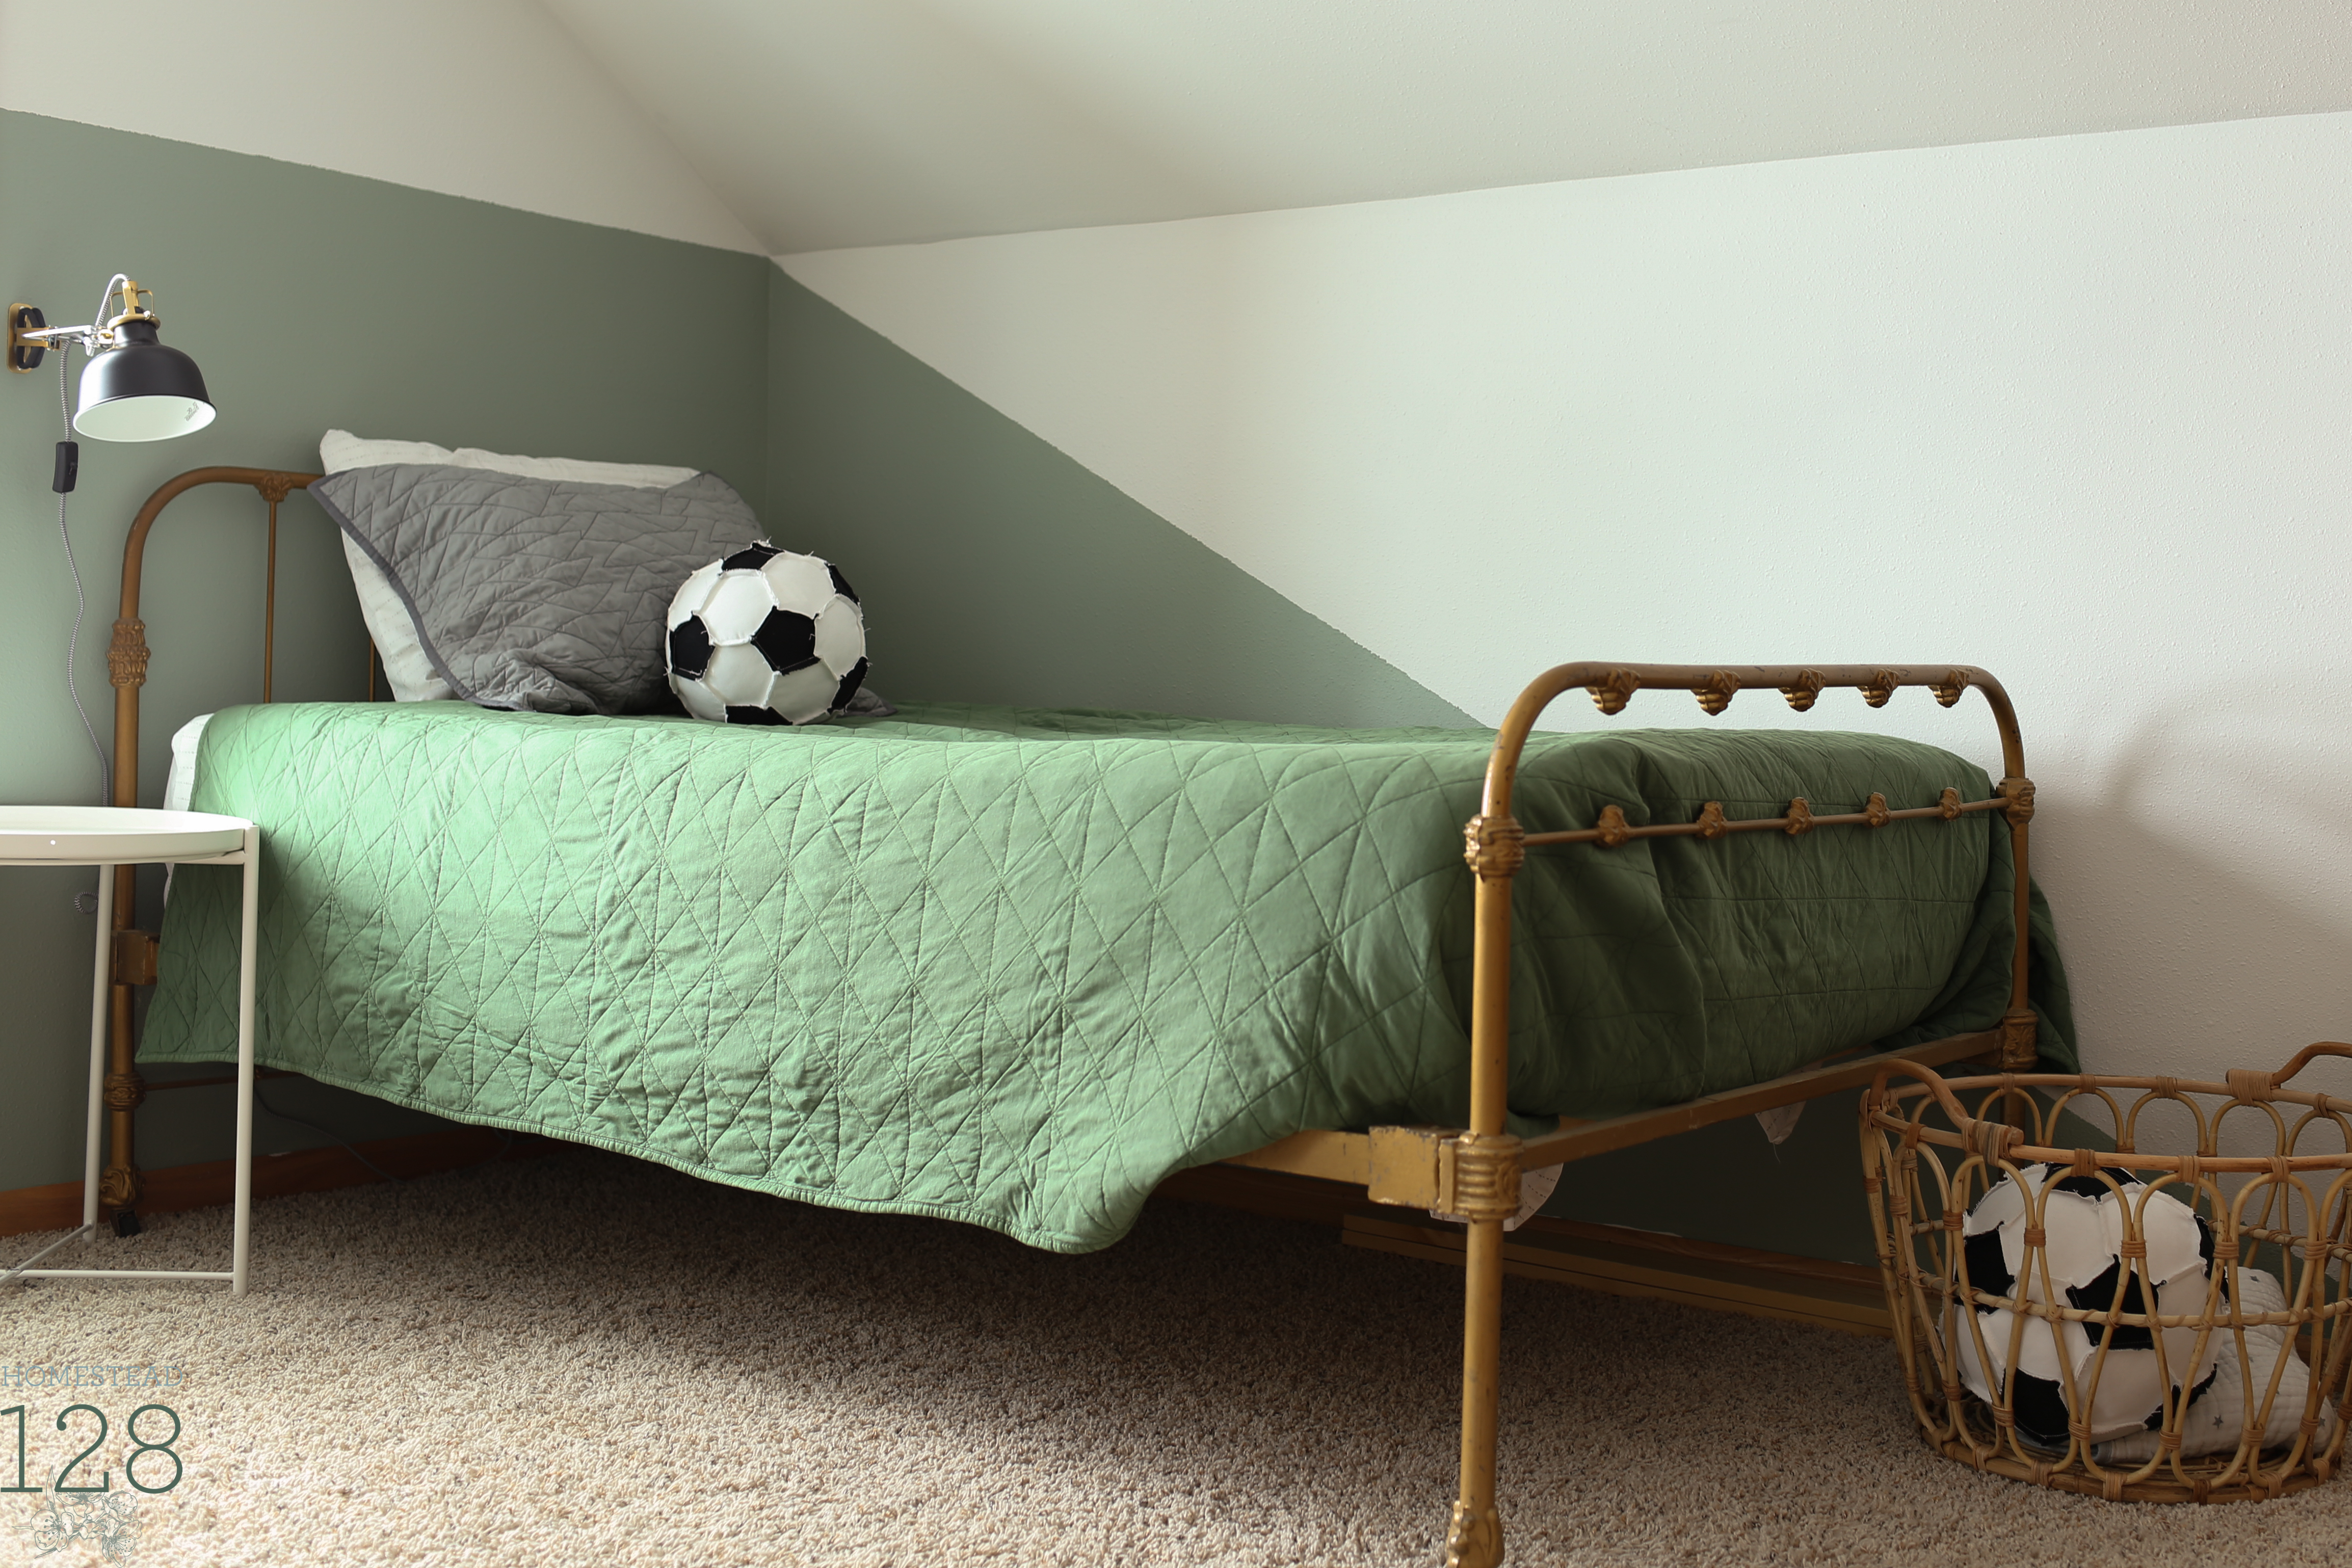 Boys bedroom is both parts industrial and vintage with a fun playful side!